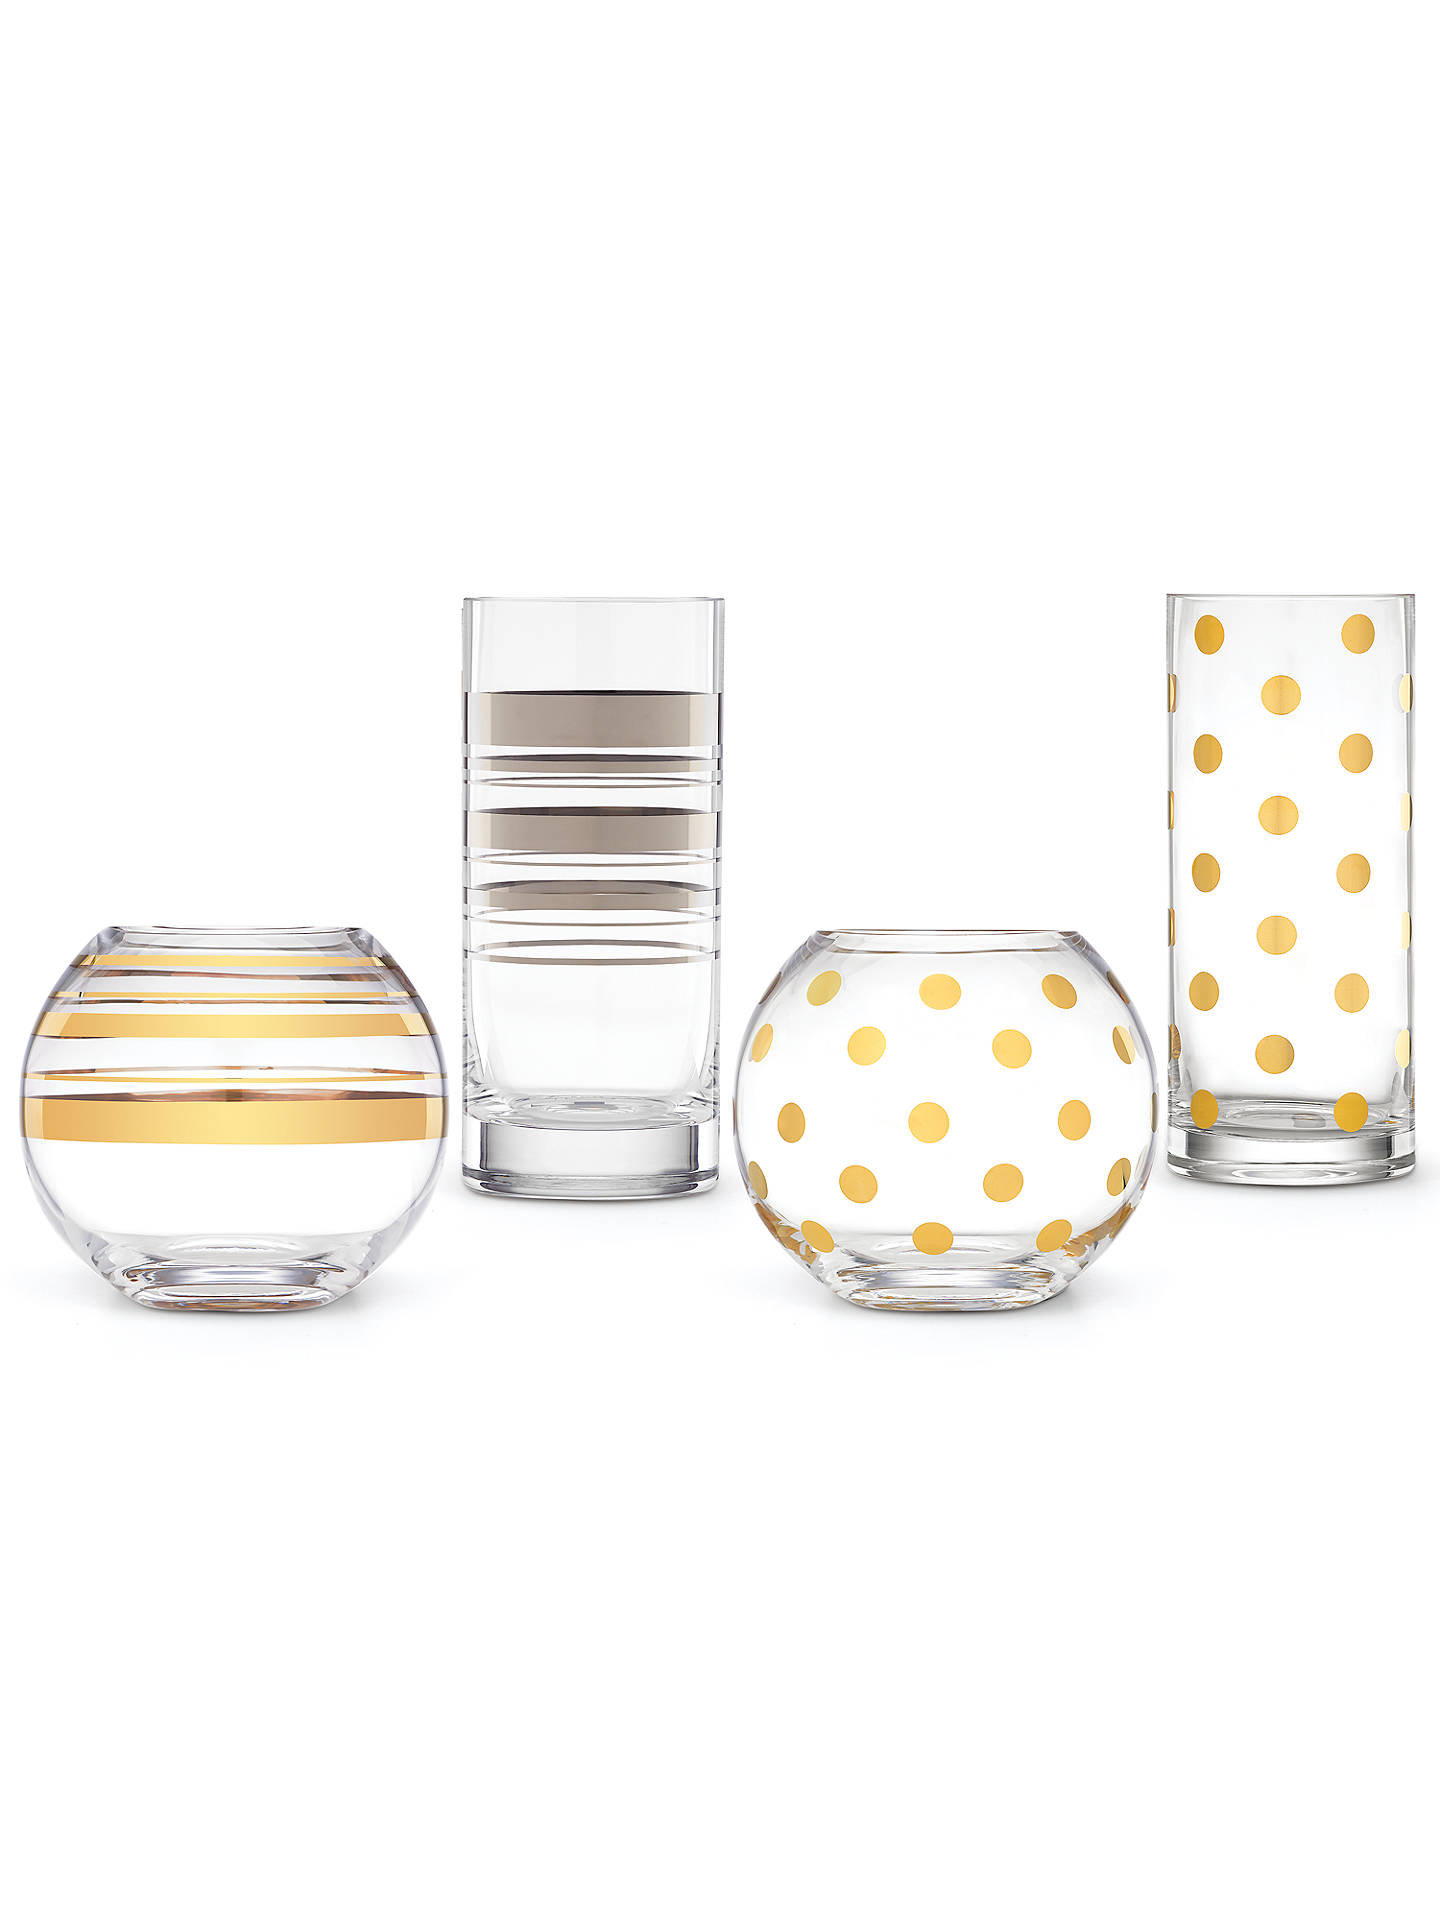 Buykate spade new york Pearl Place Vase Online at johnlewis.com